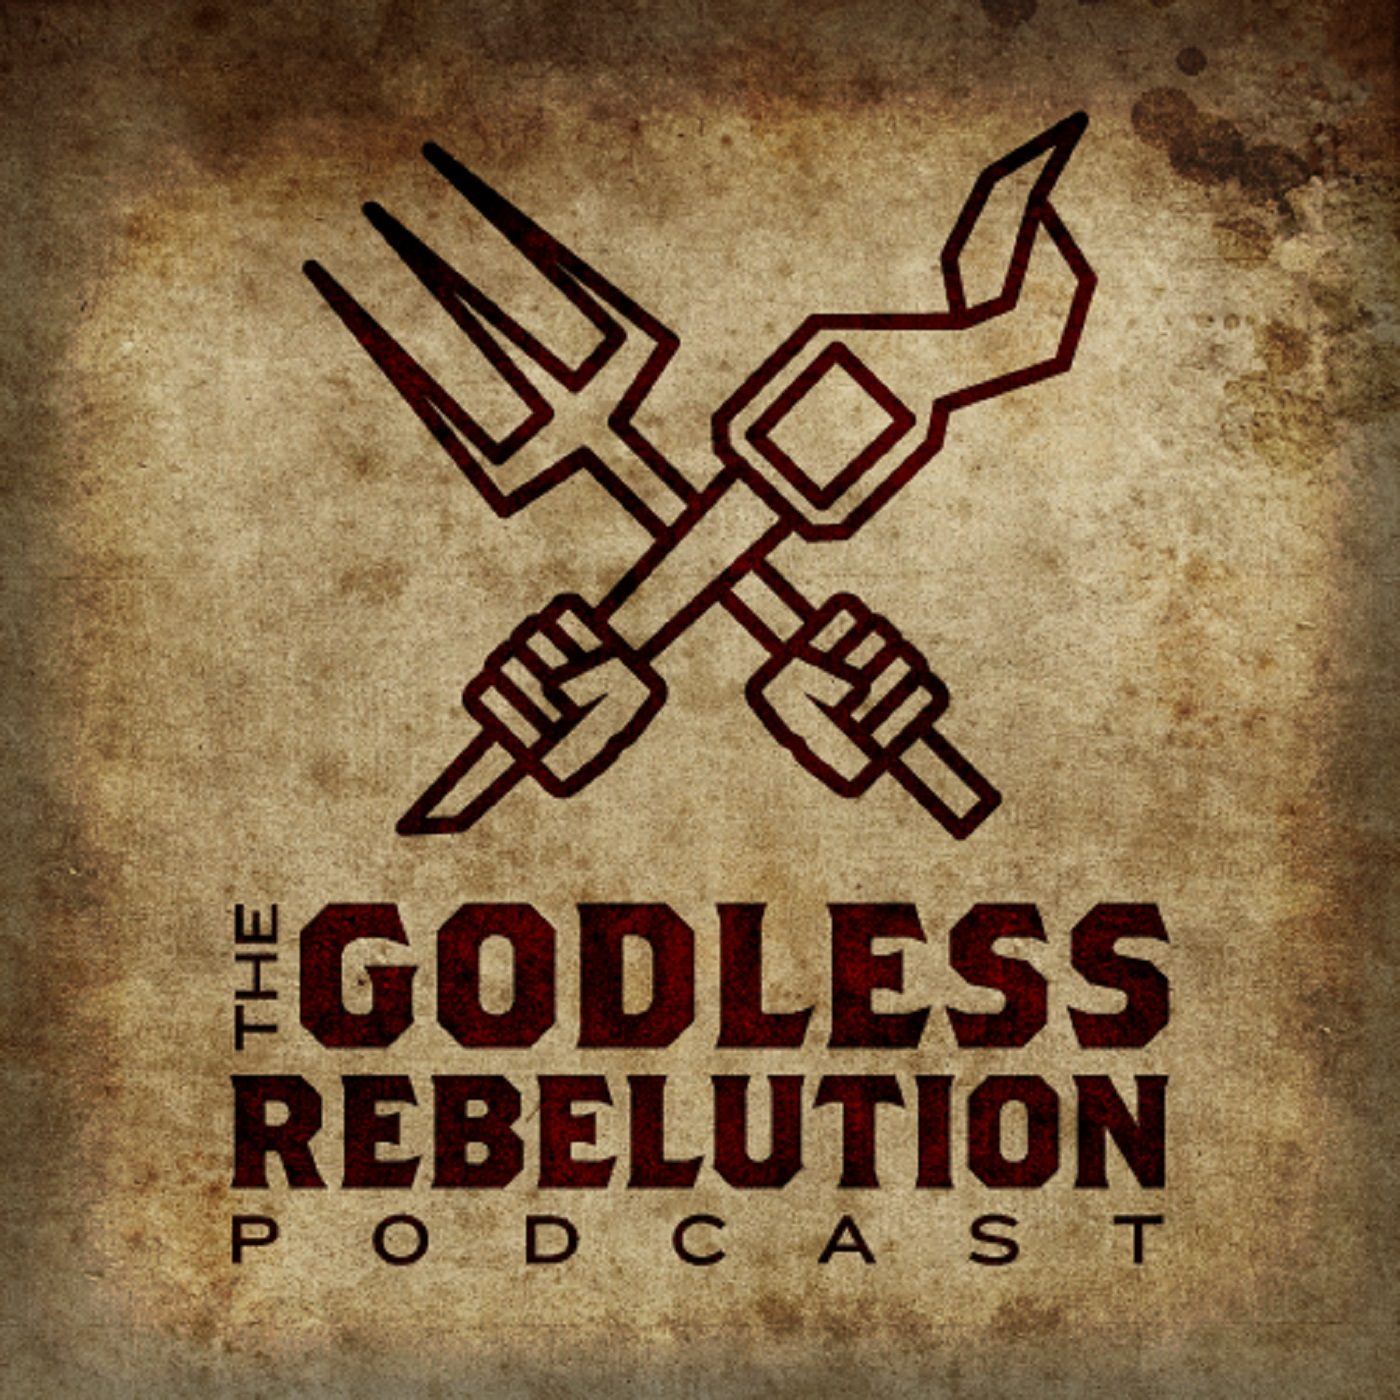 Godless Rebelution